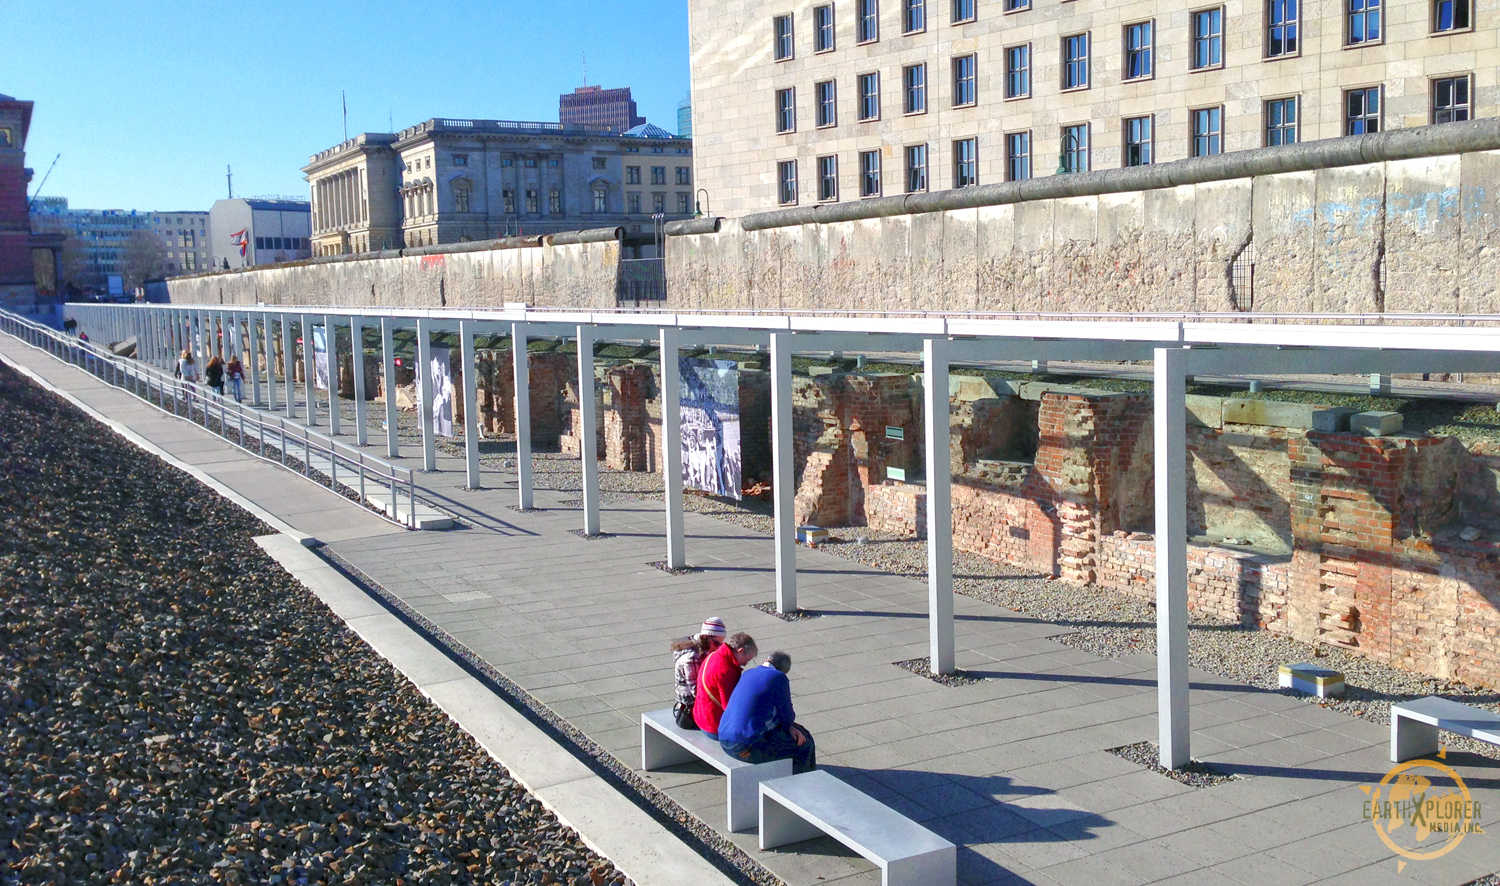 The Berlin Wall was a barrier constructed by the German Democratic Republic starting on 13 August 1961